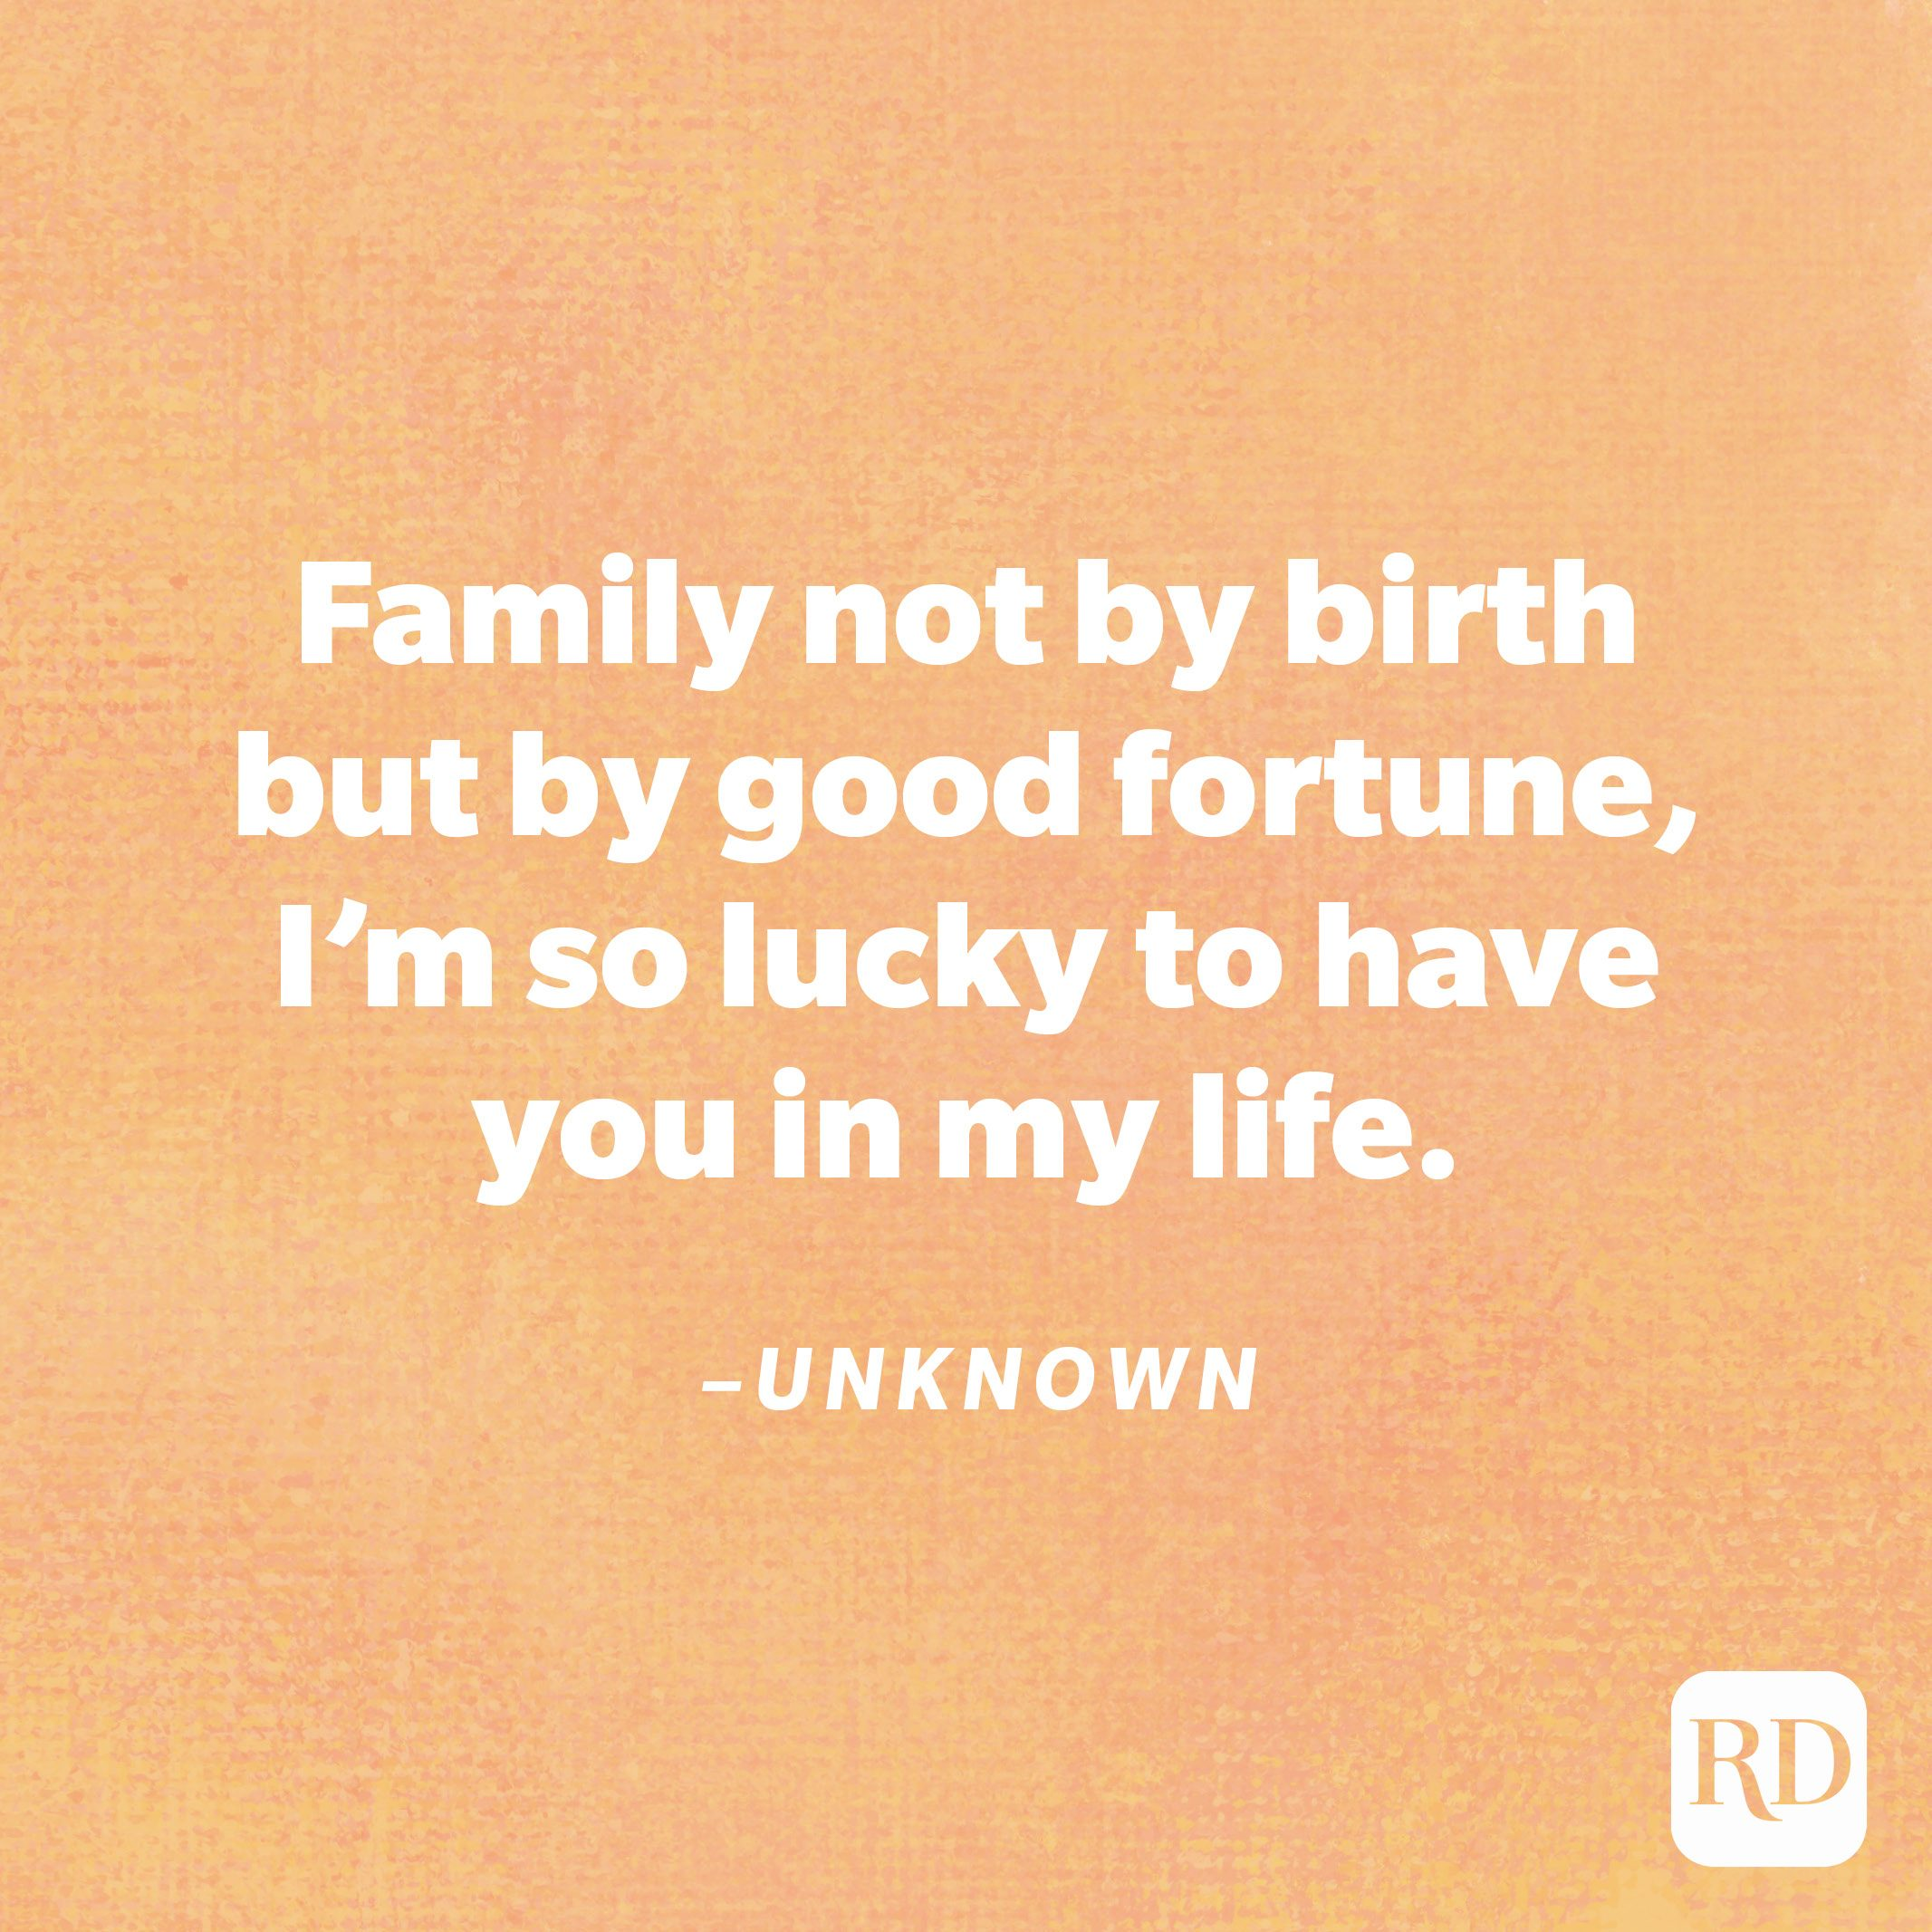 """""""Family not by birth but by good fortune, I'm so lucky to have you in my life.""""—Unknown"""